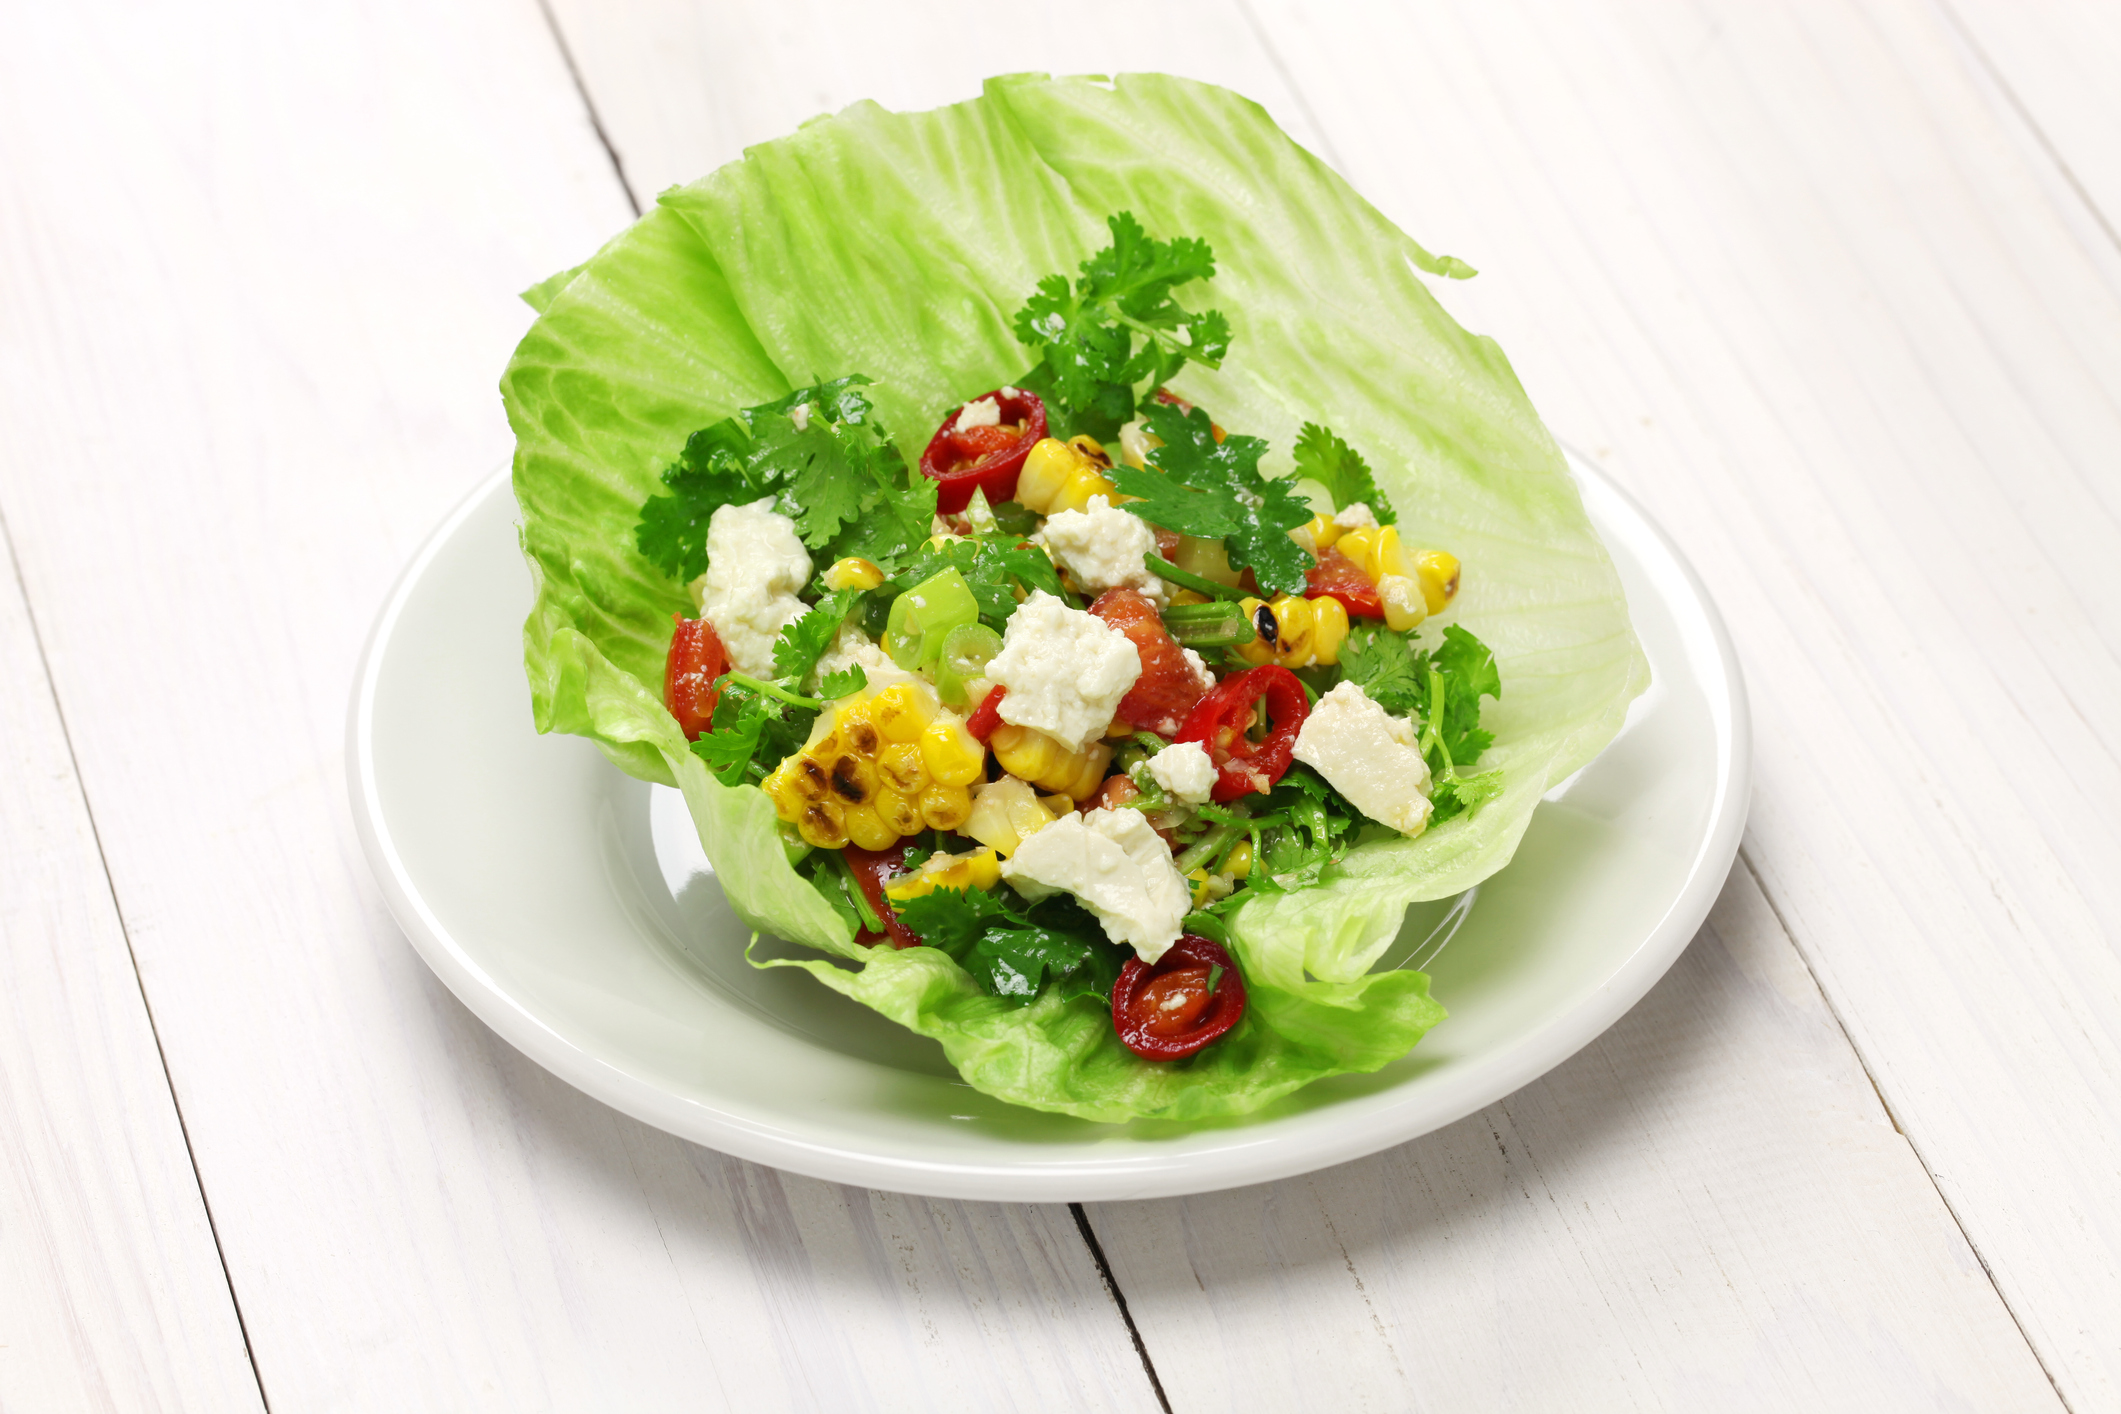 Athlete Meal: Lettuce Cup Ideas